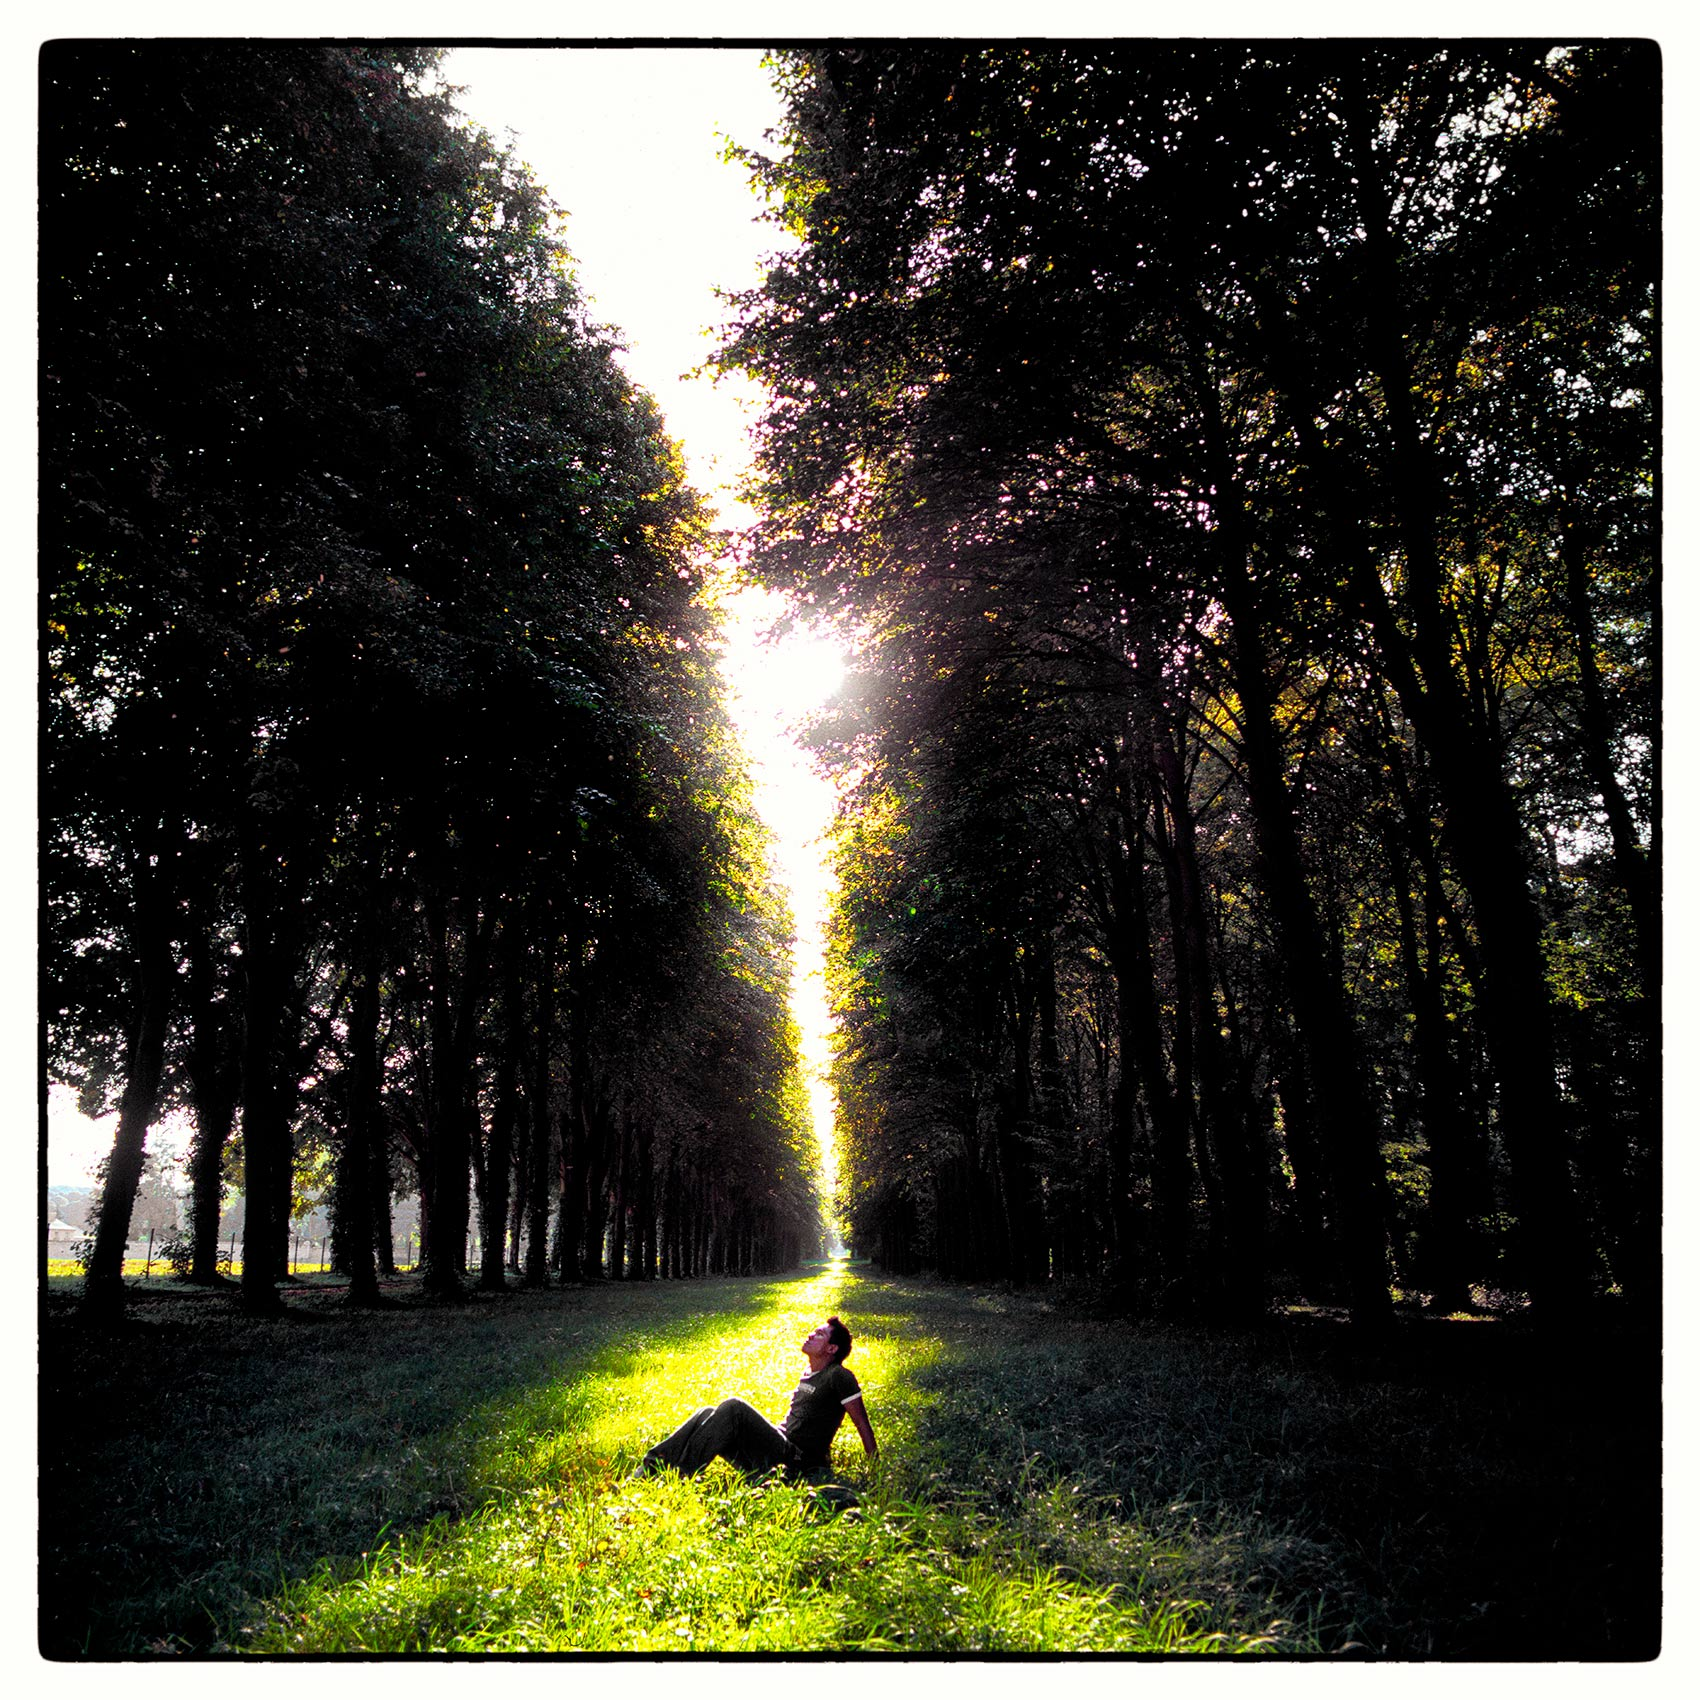 viradeth-manixab-sits-between-a-long-row-of-trees-at-sunset-while-visiting-chateau-de-versailles-in-france